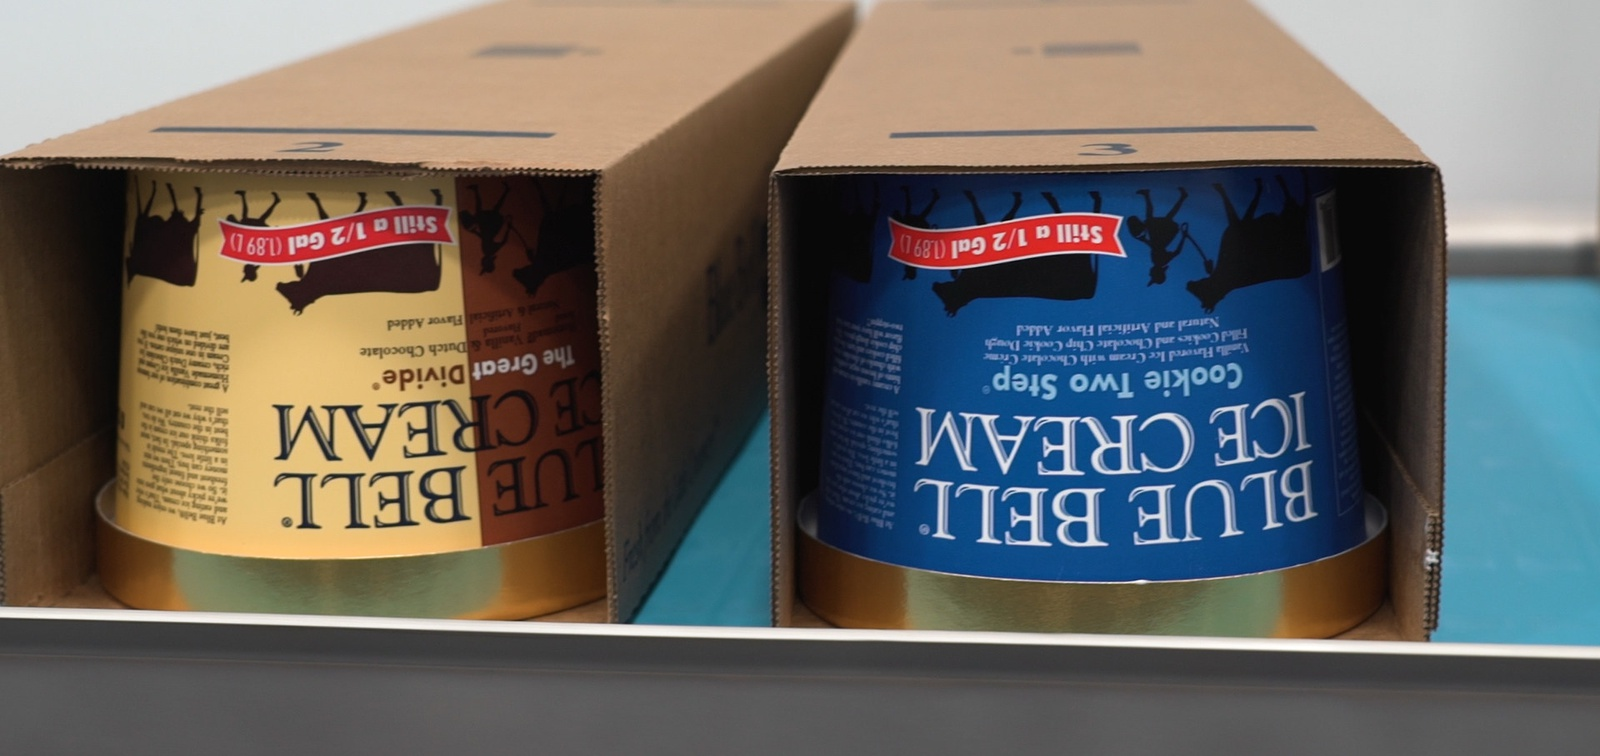 Former Blue Bell president indicted on charges of covering up 2015 listeria outbreak